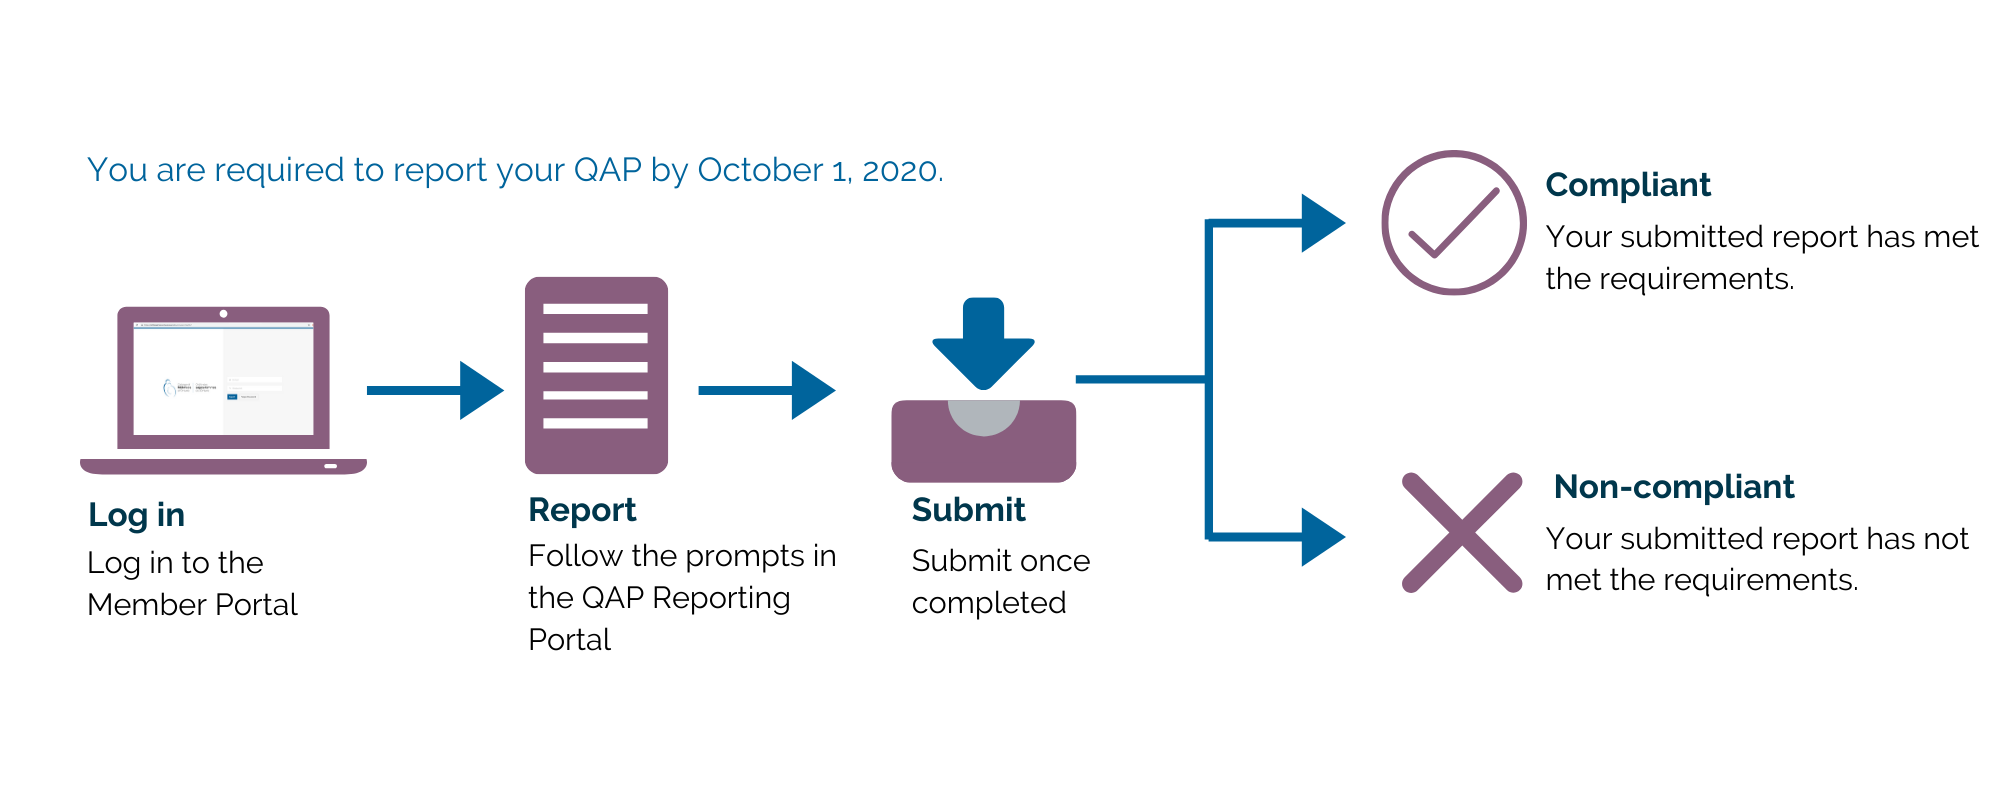 An image that outlines what you are required to report for your QAP by October 1, 2020.  Log In to the Member Portal Report and follow the prompts in the QAP reporting portal Submit once completed.  There are two outcomes, you are either Compliant and your submitted report has met the requirements, or you are non-compliant and your submitted report has not met the requirements.